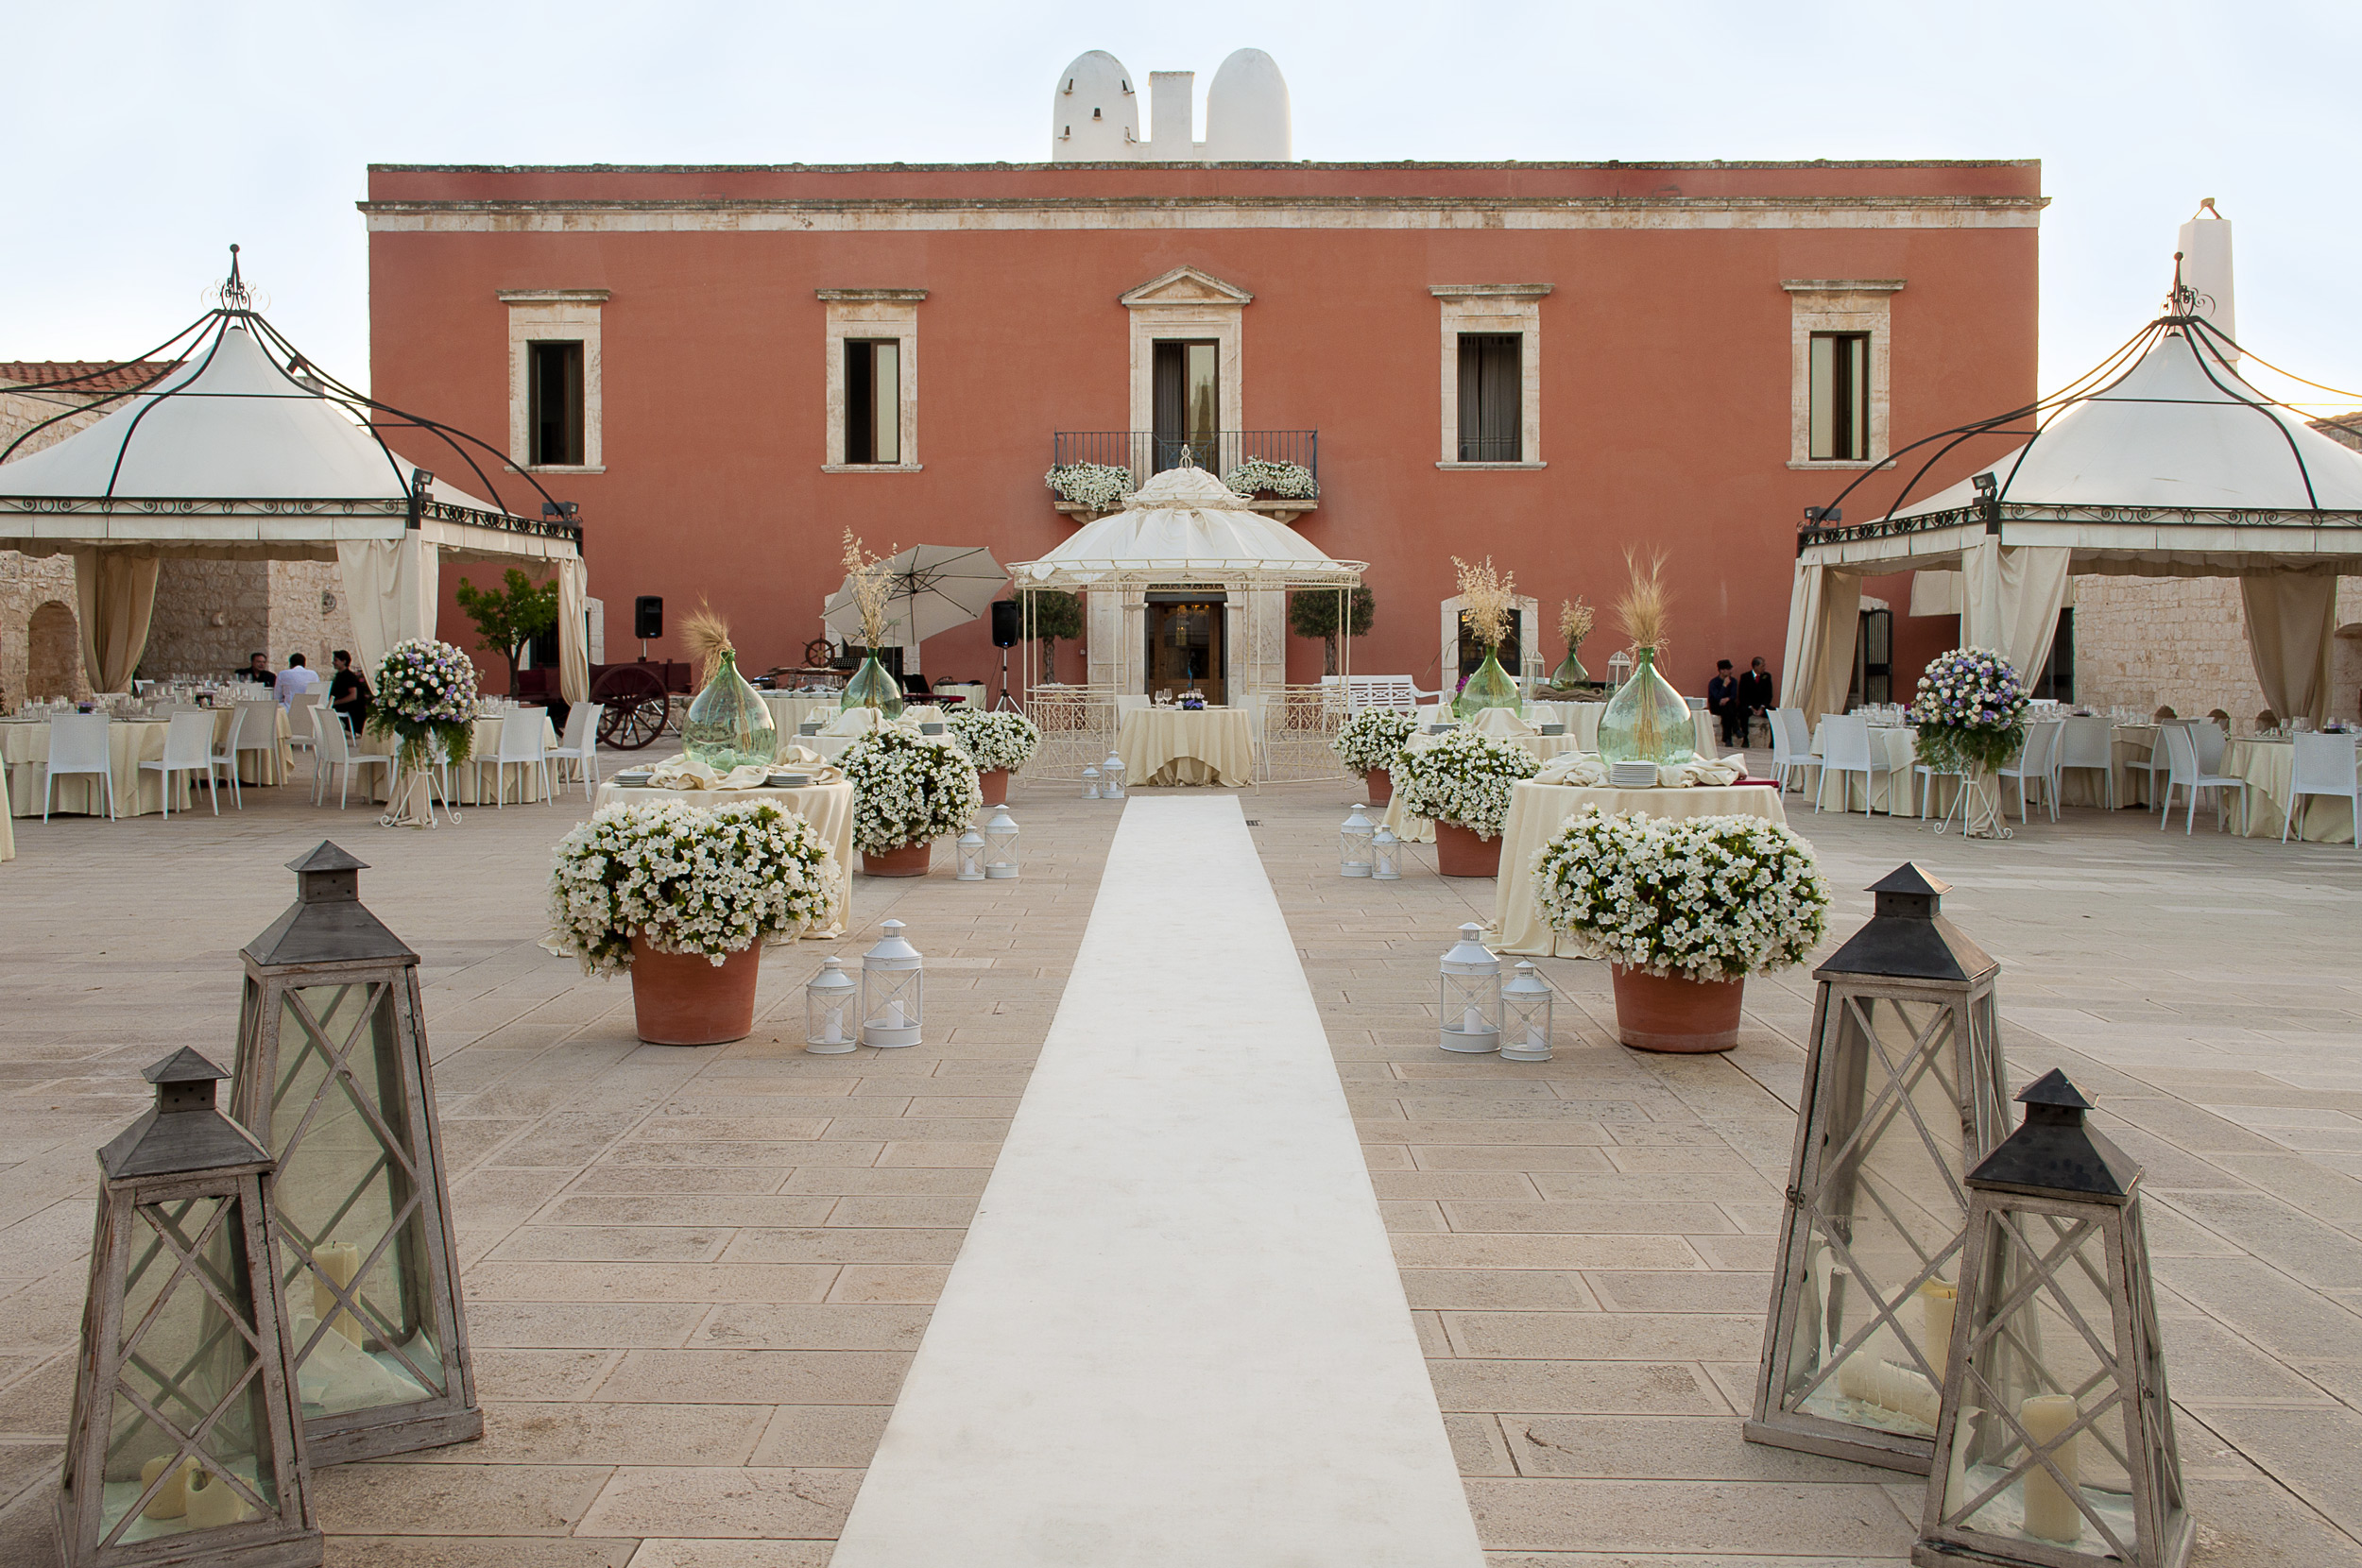 Location Matrimonio Country Chic Roma : Le migliori location per matrimonio country chic a bari